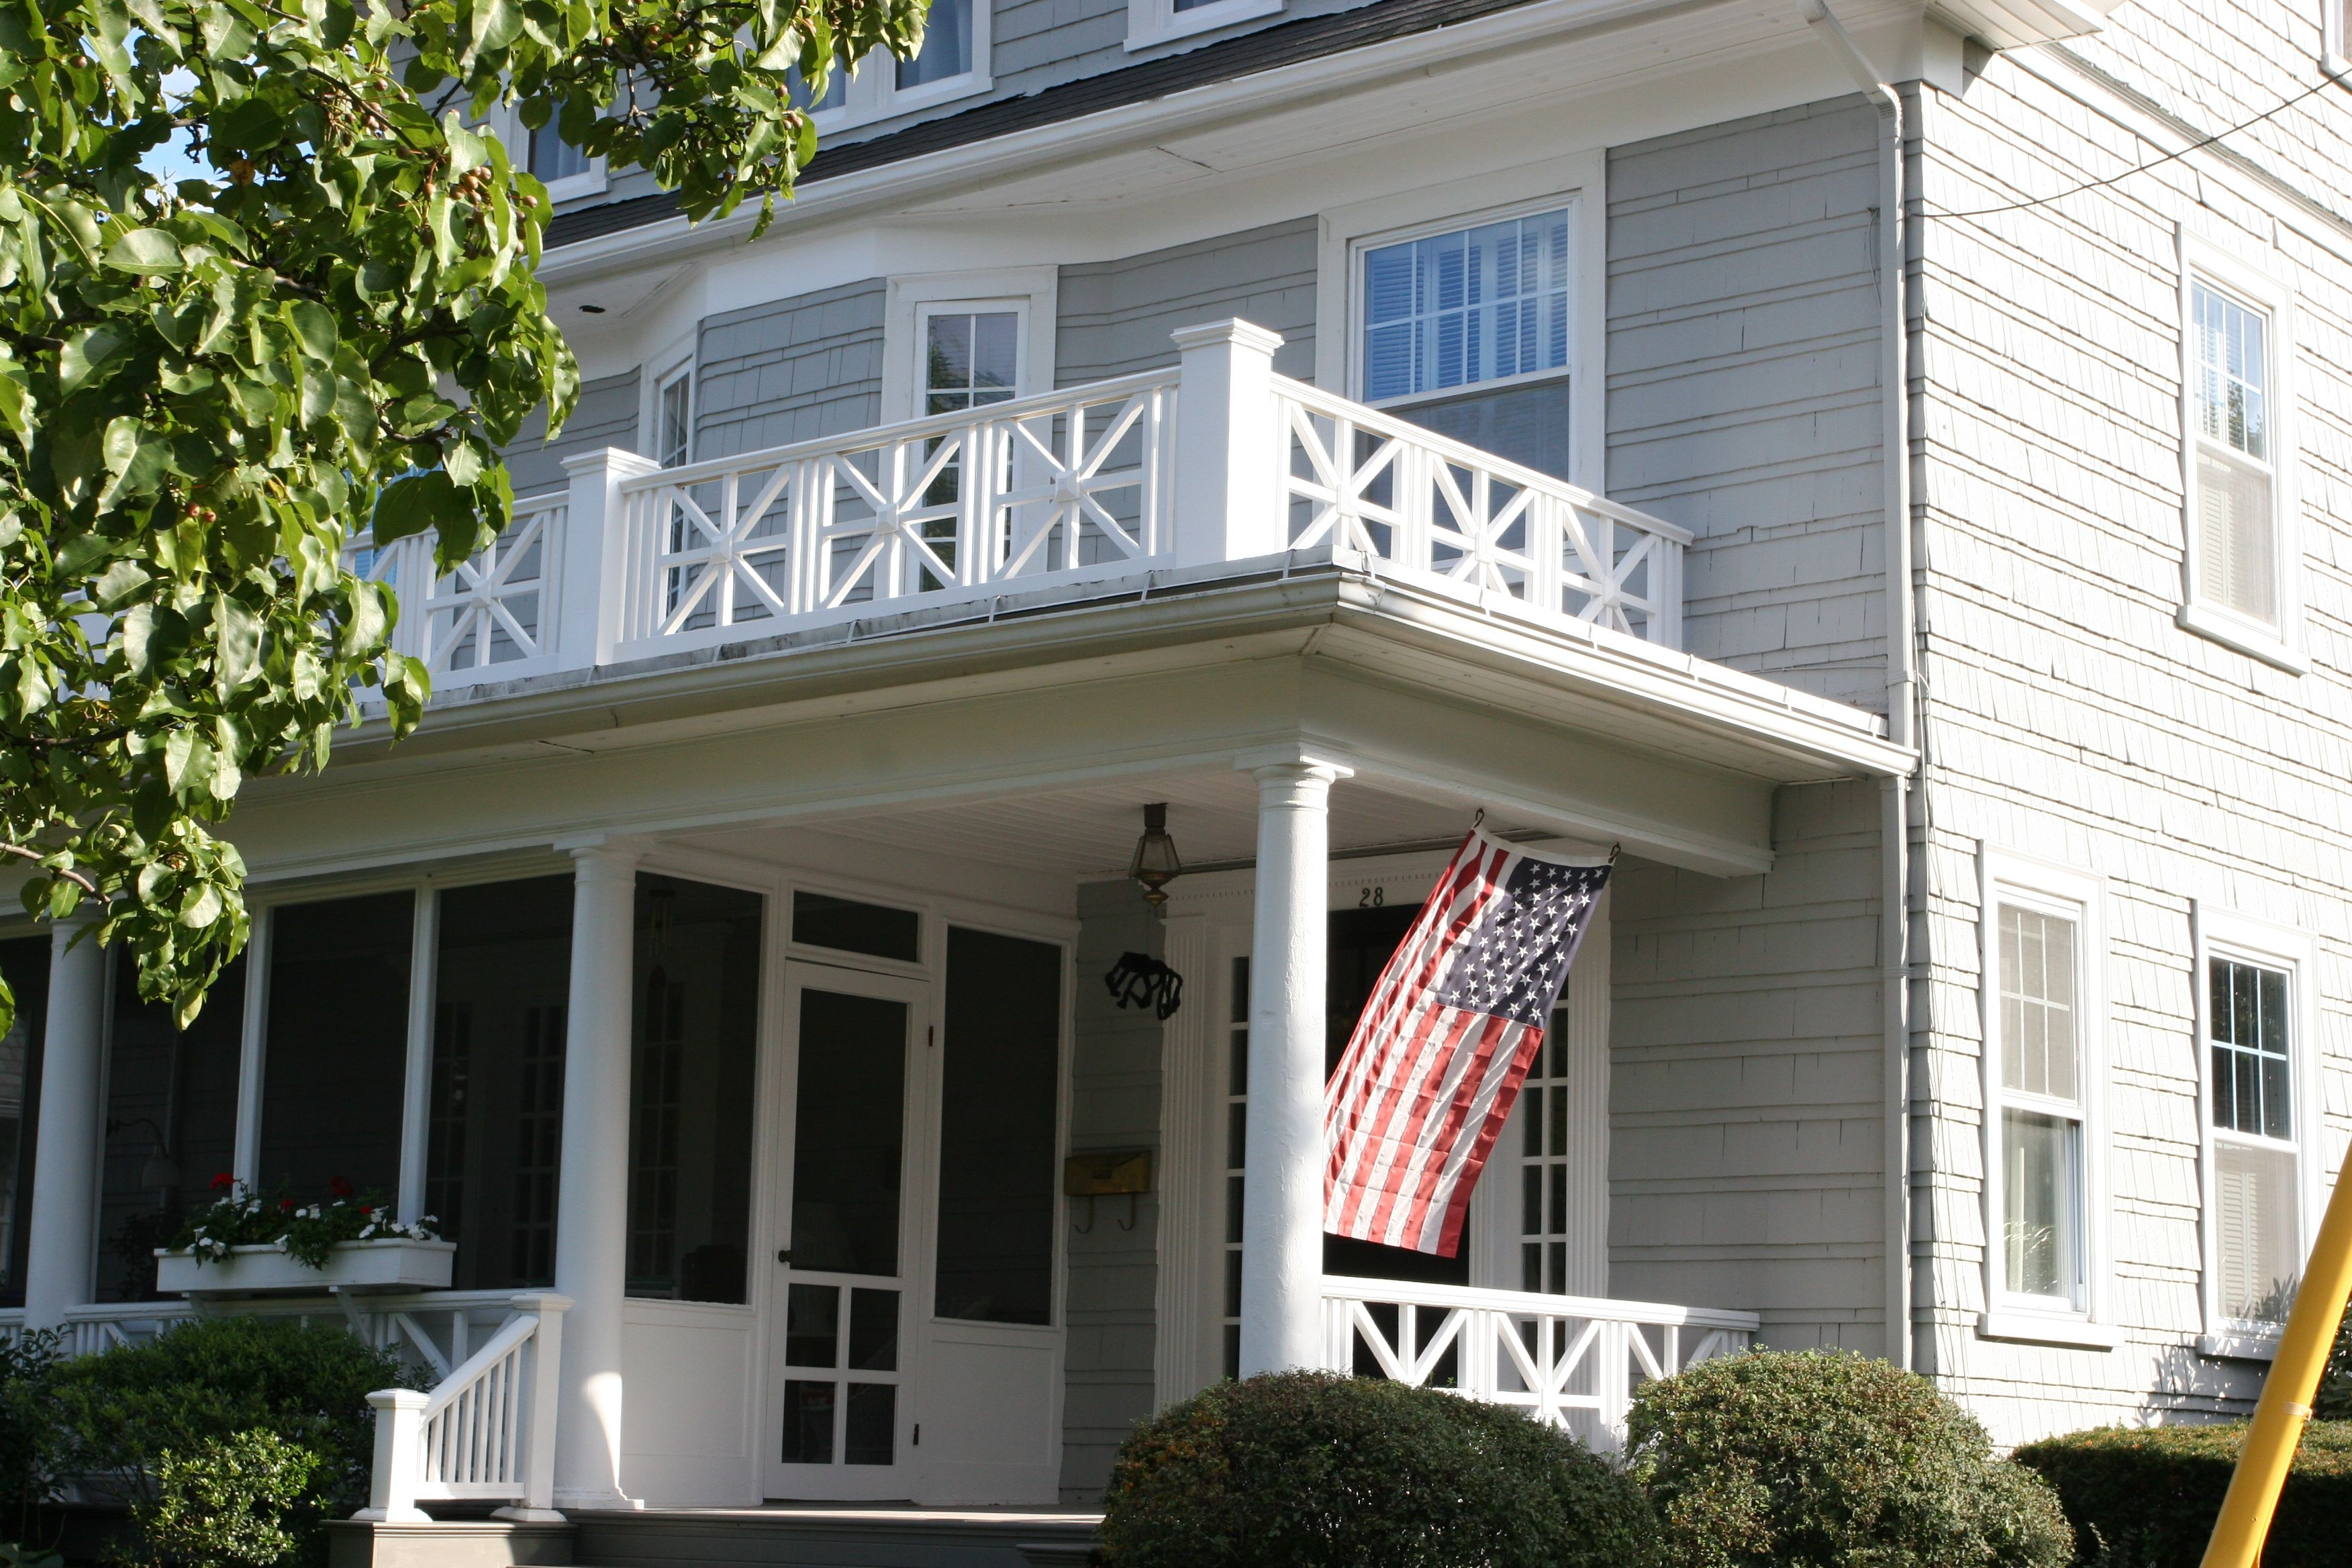 The Union Jack was definitely a feature from the neighborhood at large, in addition to being a part of our home's history and character.